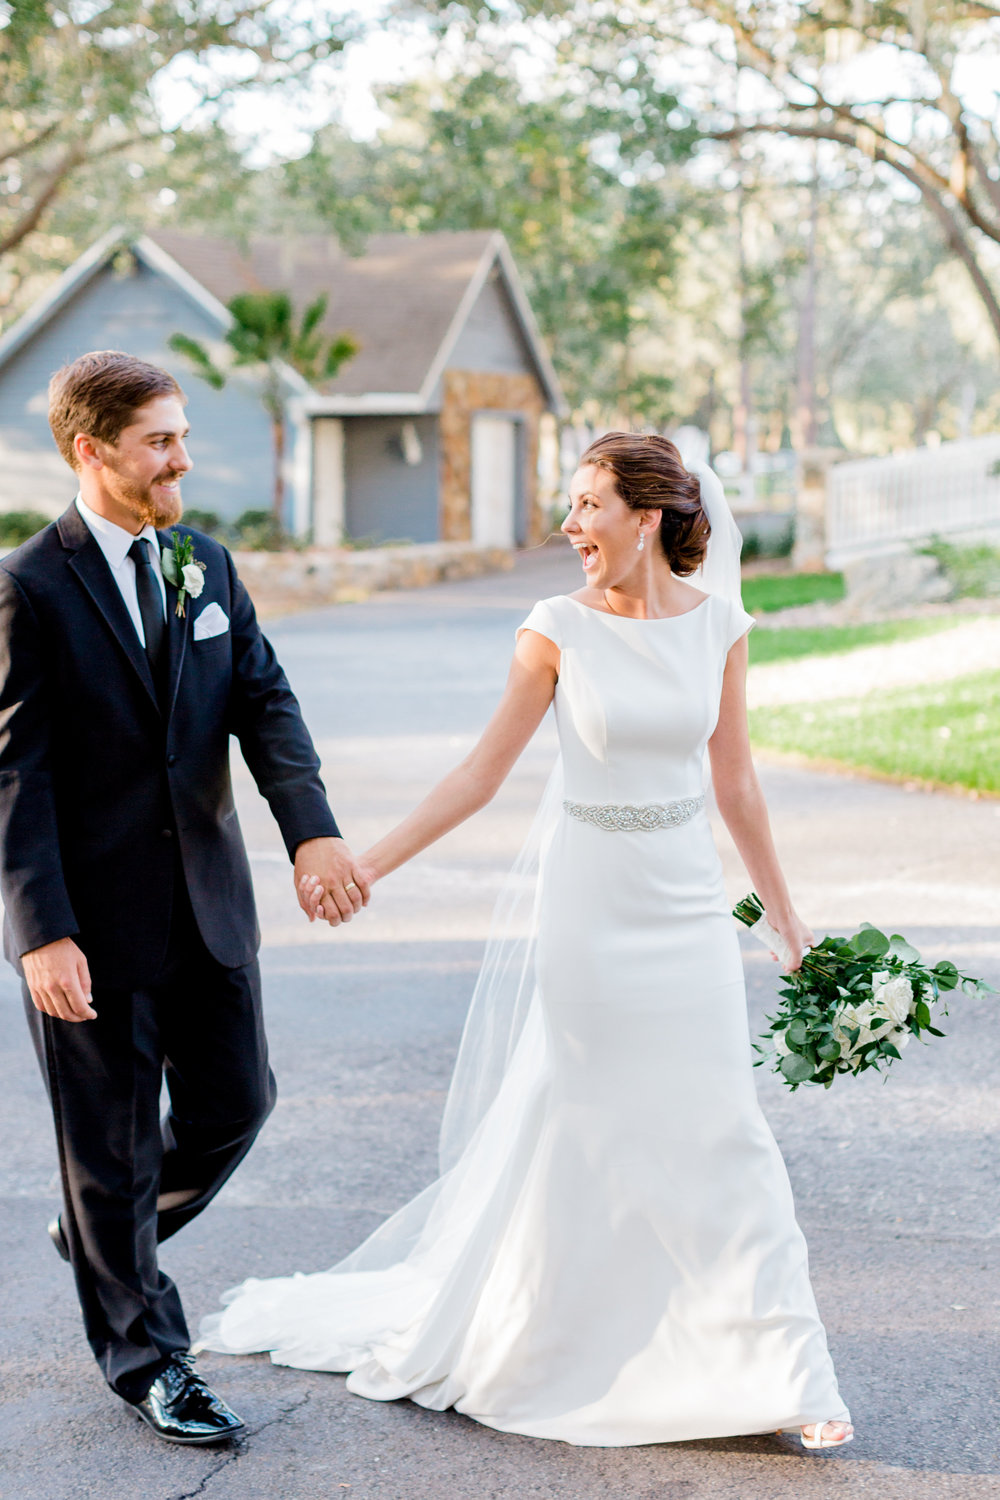 Monzy & Kenny's Wedding | Lauren Galloway Photography-521.jpg